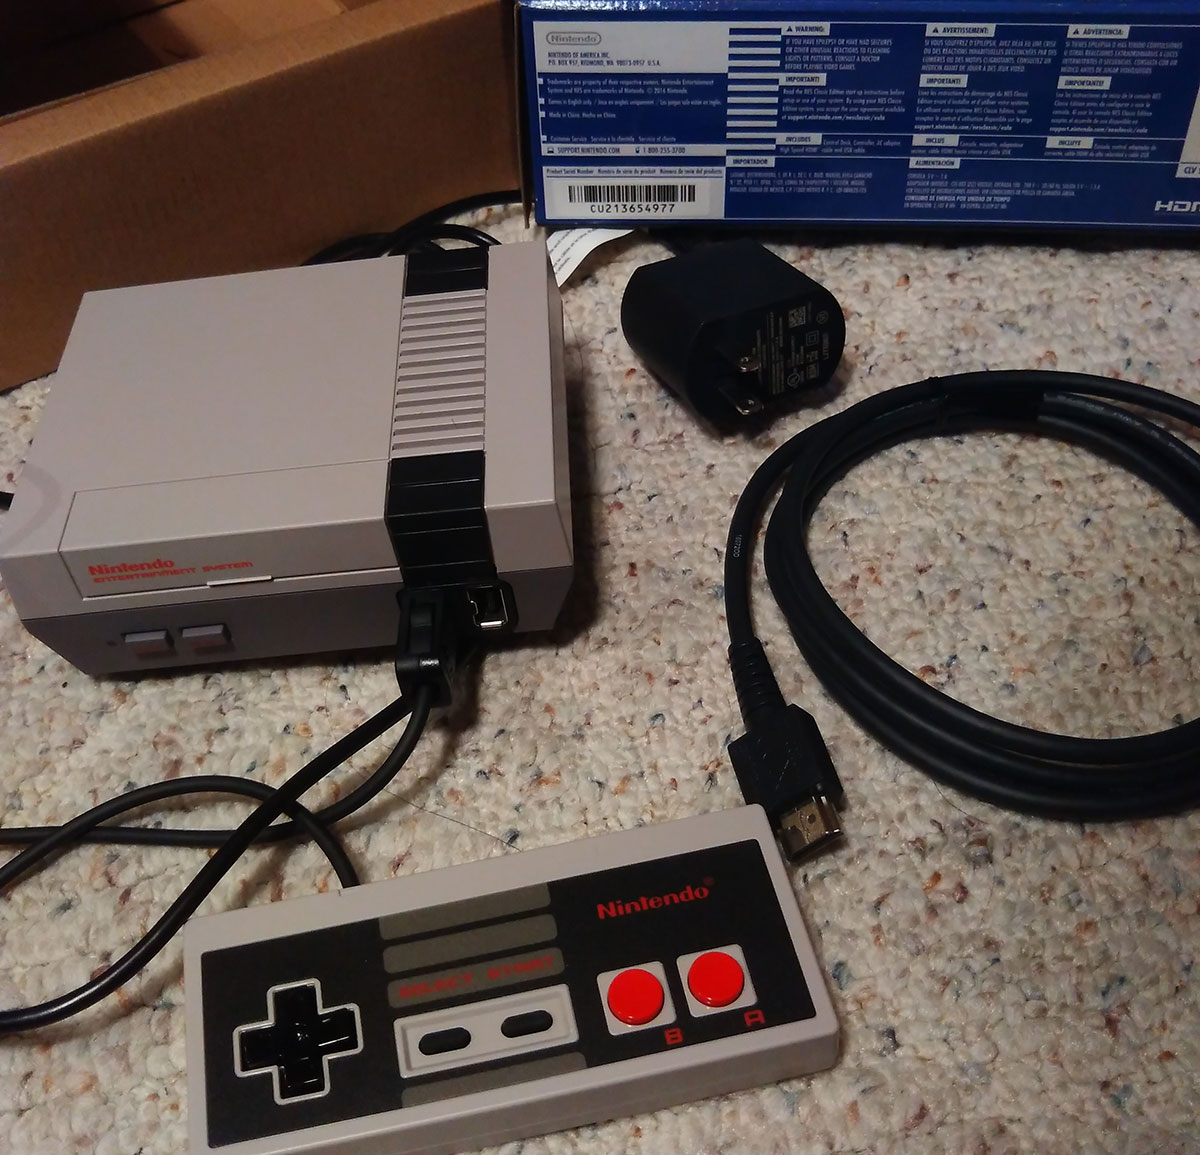 Contents of NES Classic